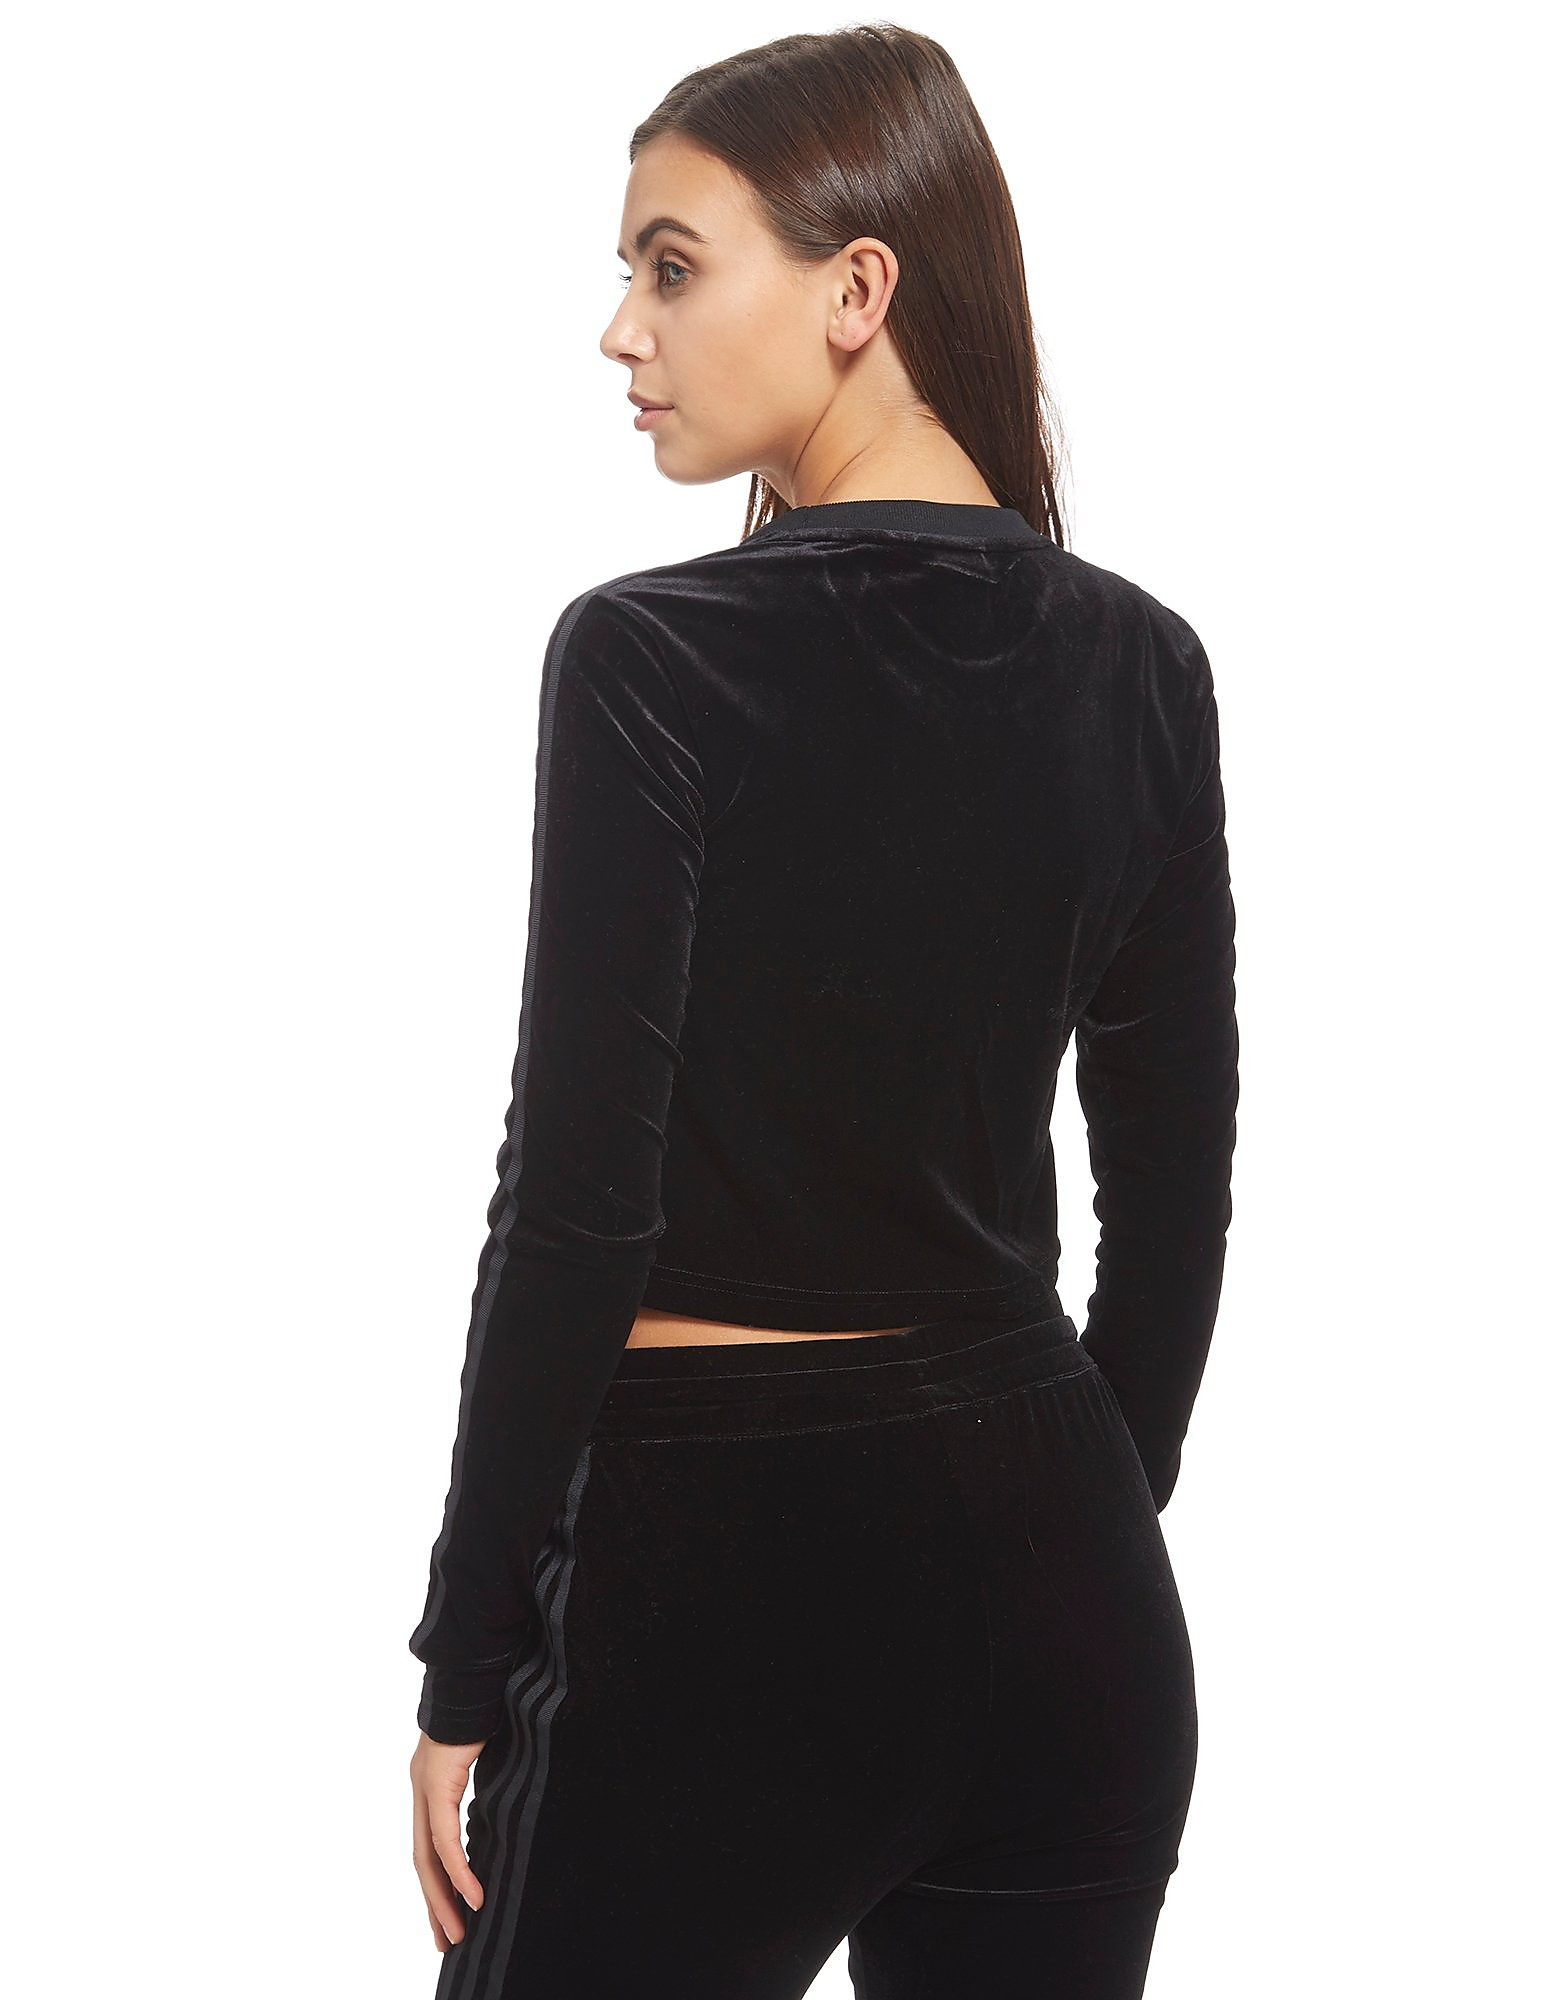 adidas Originals Velvet Vibes Long Sleeve Crop Top